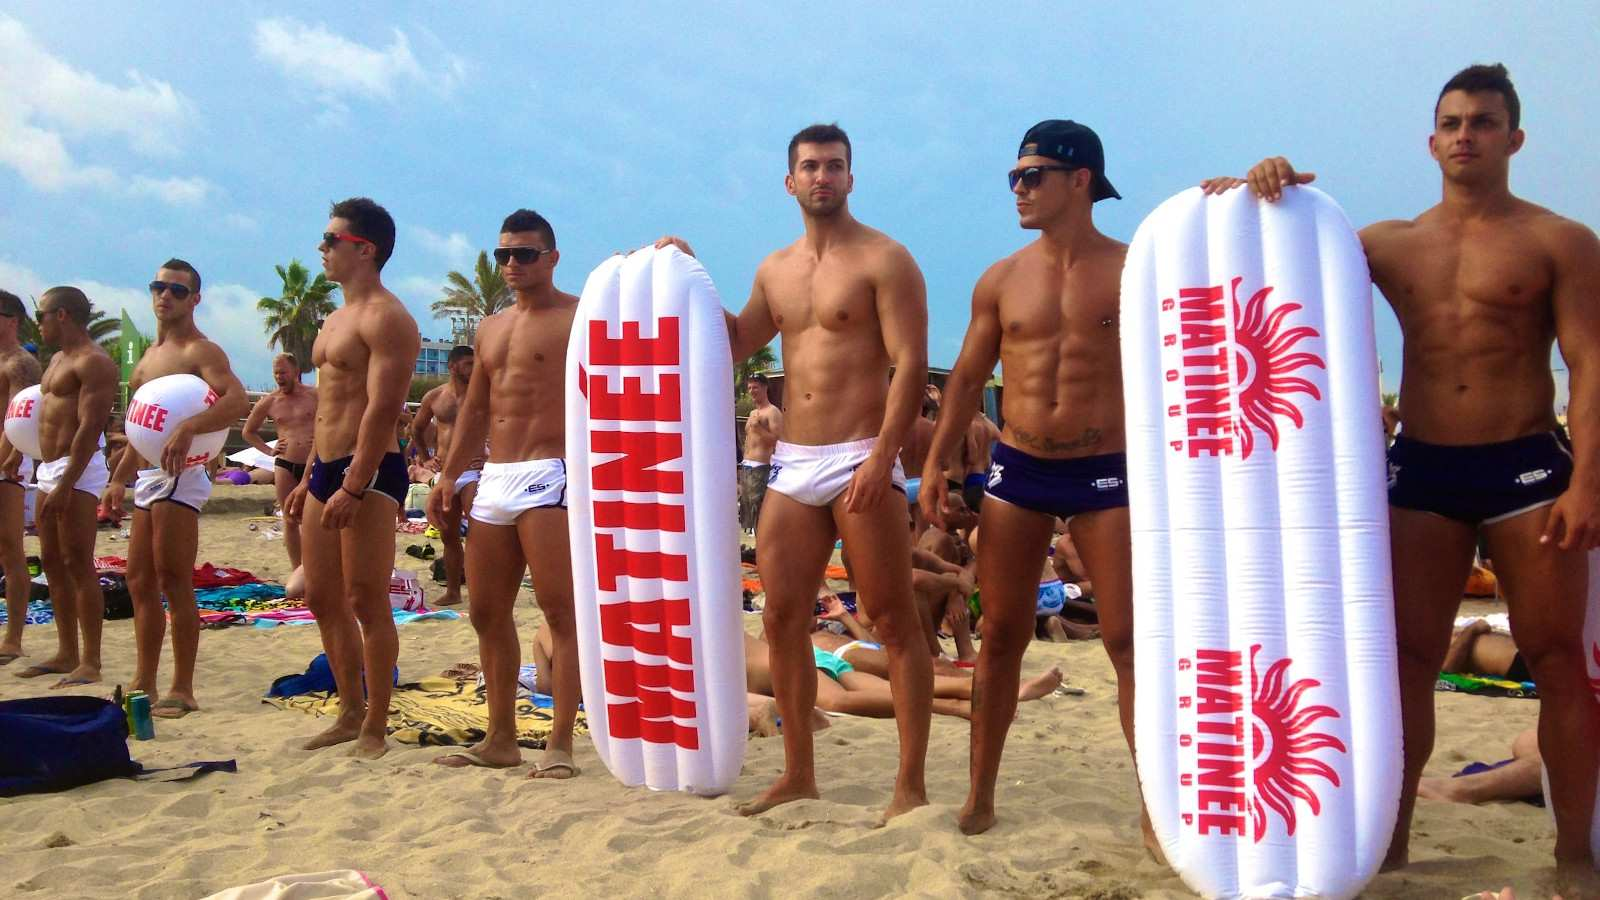 Hot boys, on Mar Bella beach, Barcelona one of the gayest cities in Spain